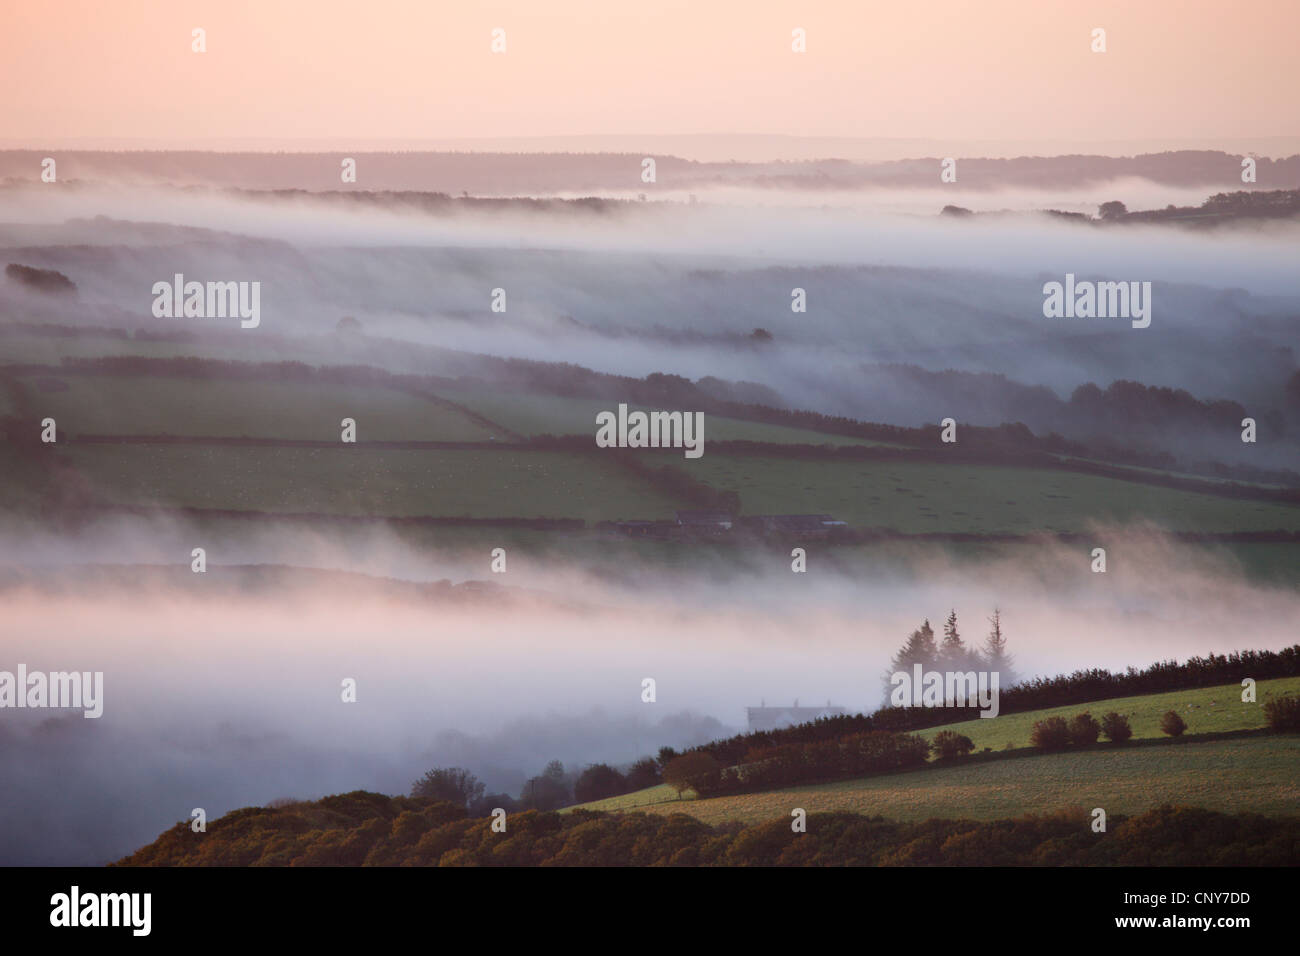 Early morning mist over the Exmoor countryside, viewed from Dunkery Hil, Exmoor National Park, Somerset, England - Stock Image